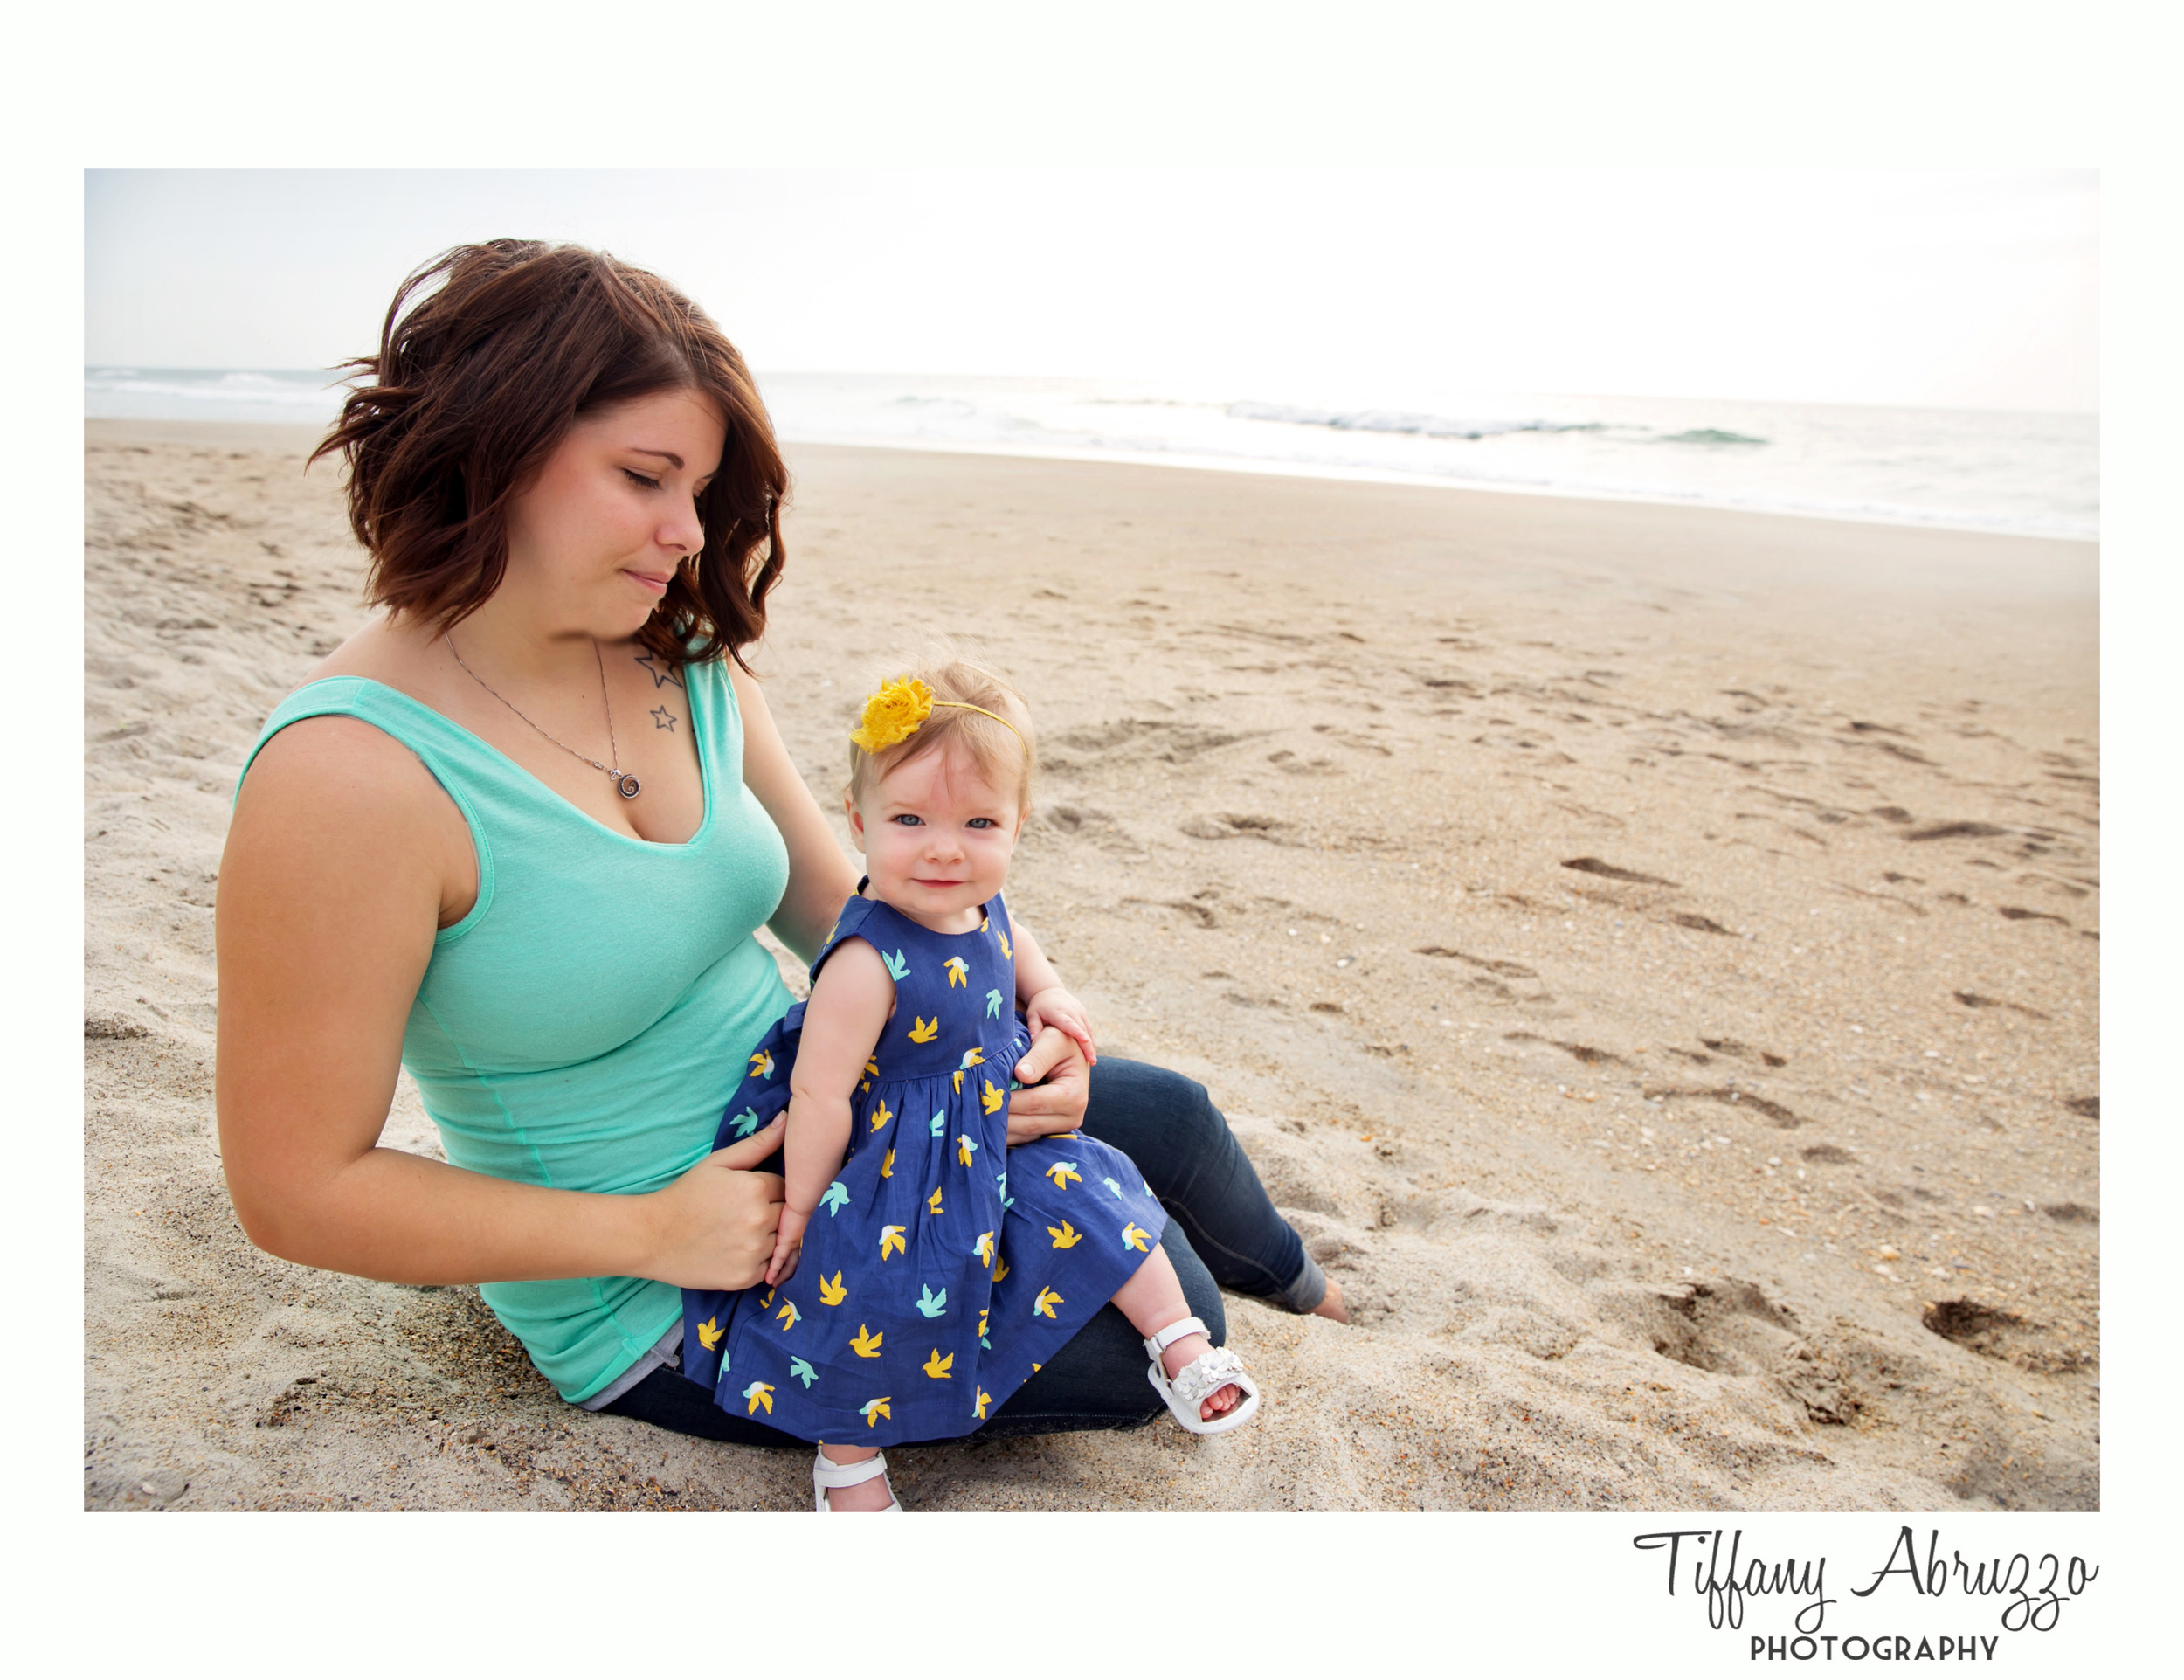 Wilmington_NC_Photography_Tiffany_Abruzzo_Wrightsville